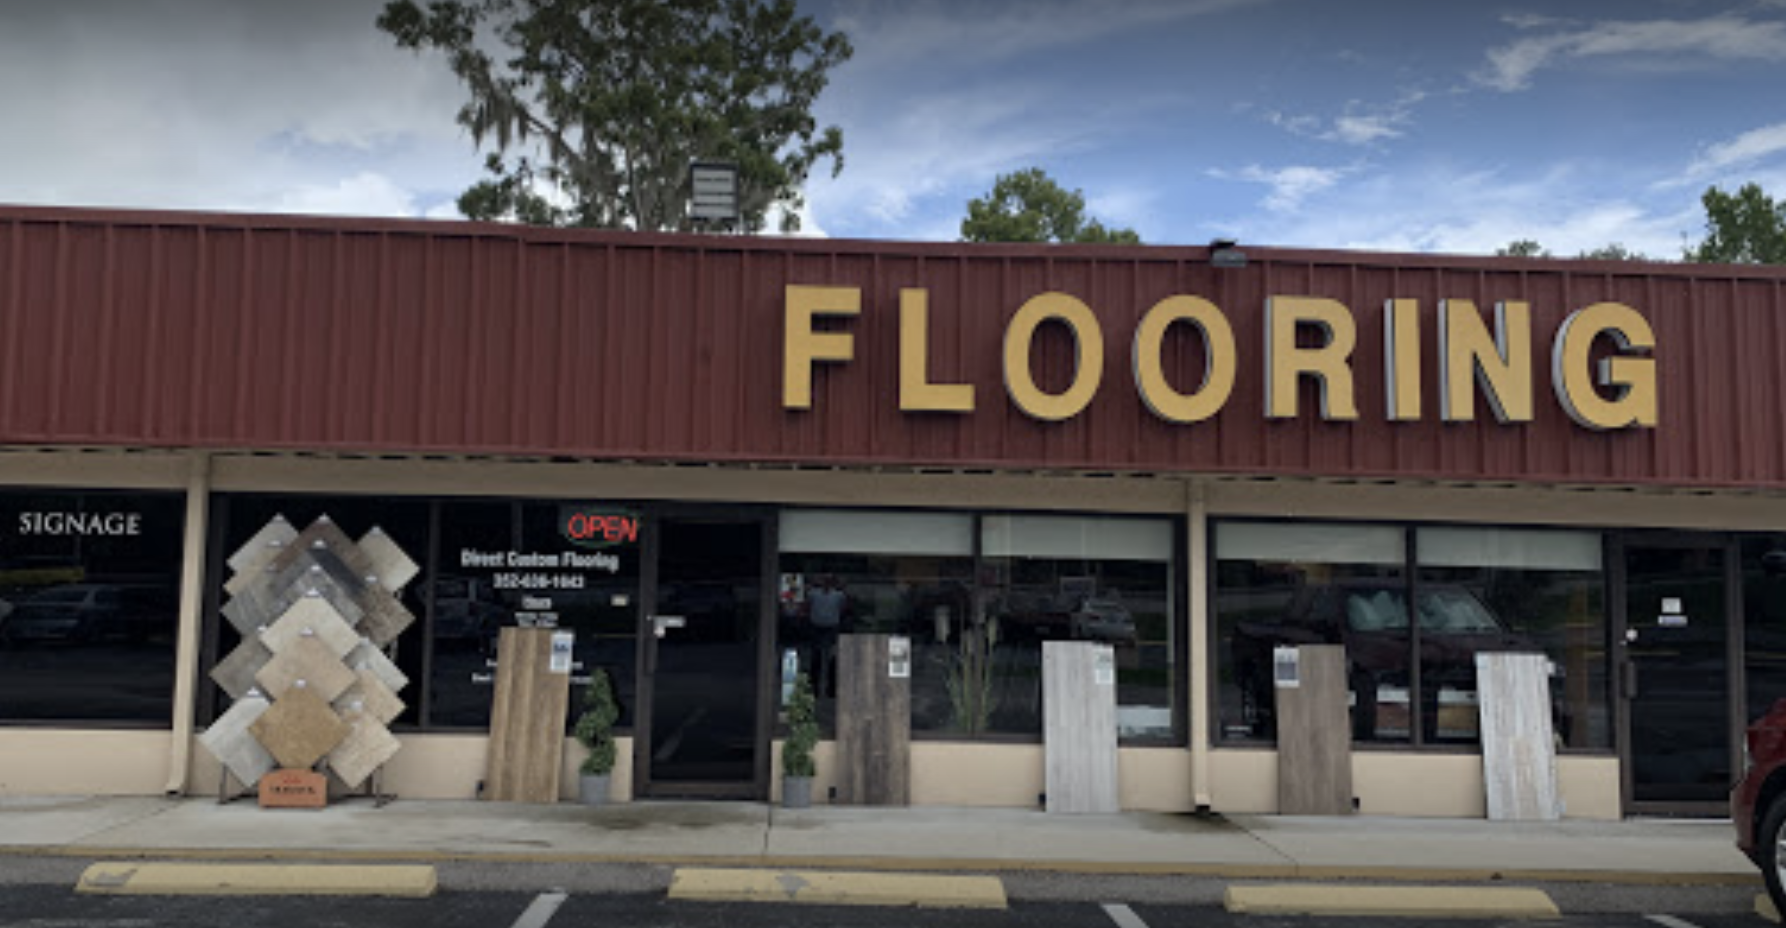 Direct Custom Flooring - 11433 US-441 #7, Leesburg, FL 34788